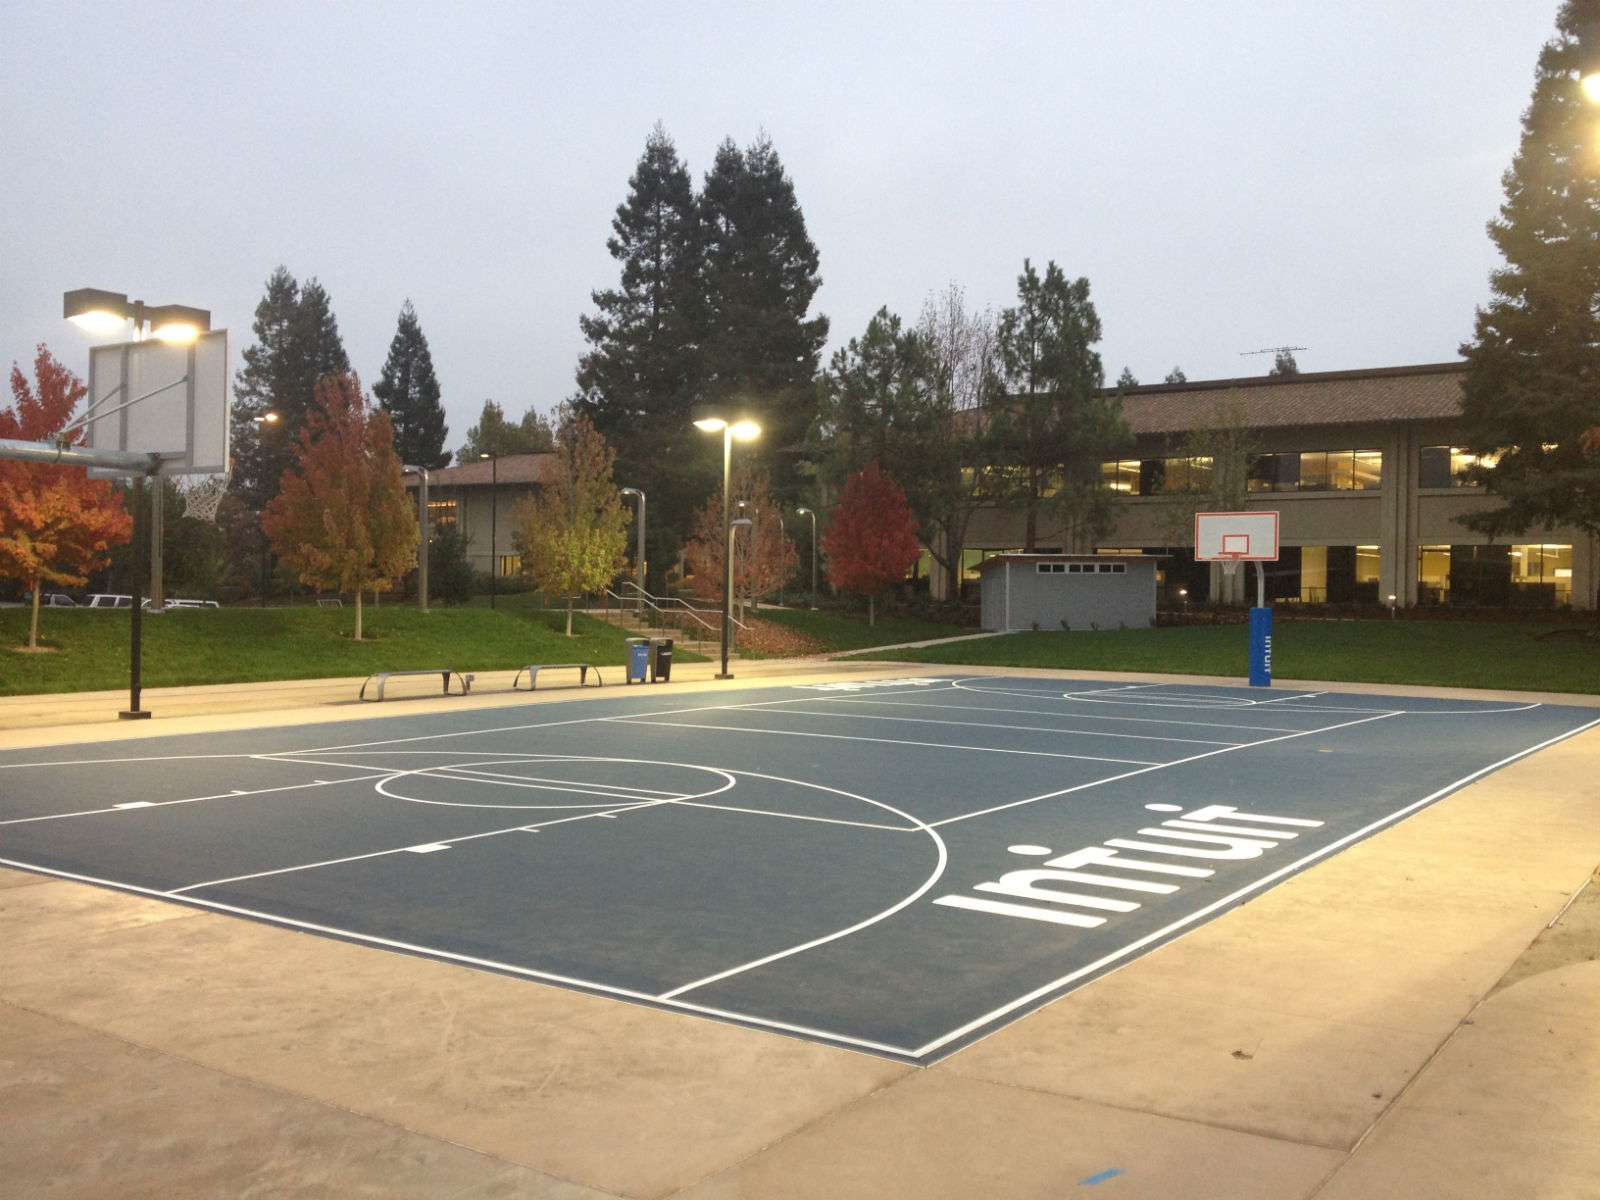 Intuit Full Basketball Court, Mountain View, CA, United States